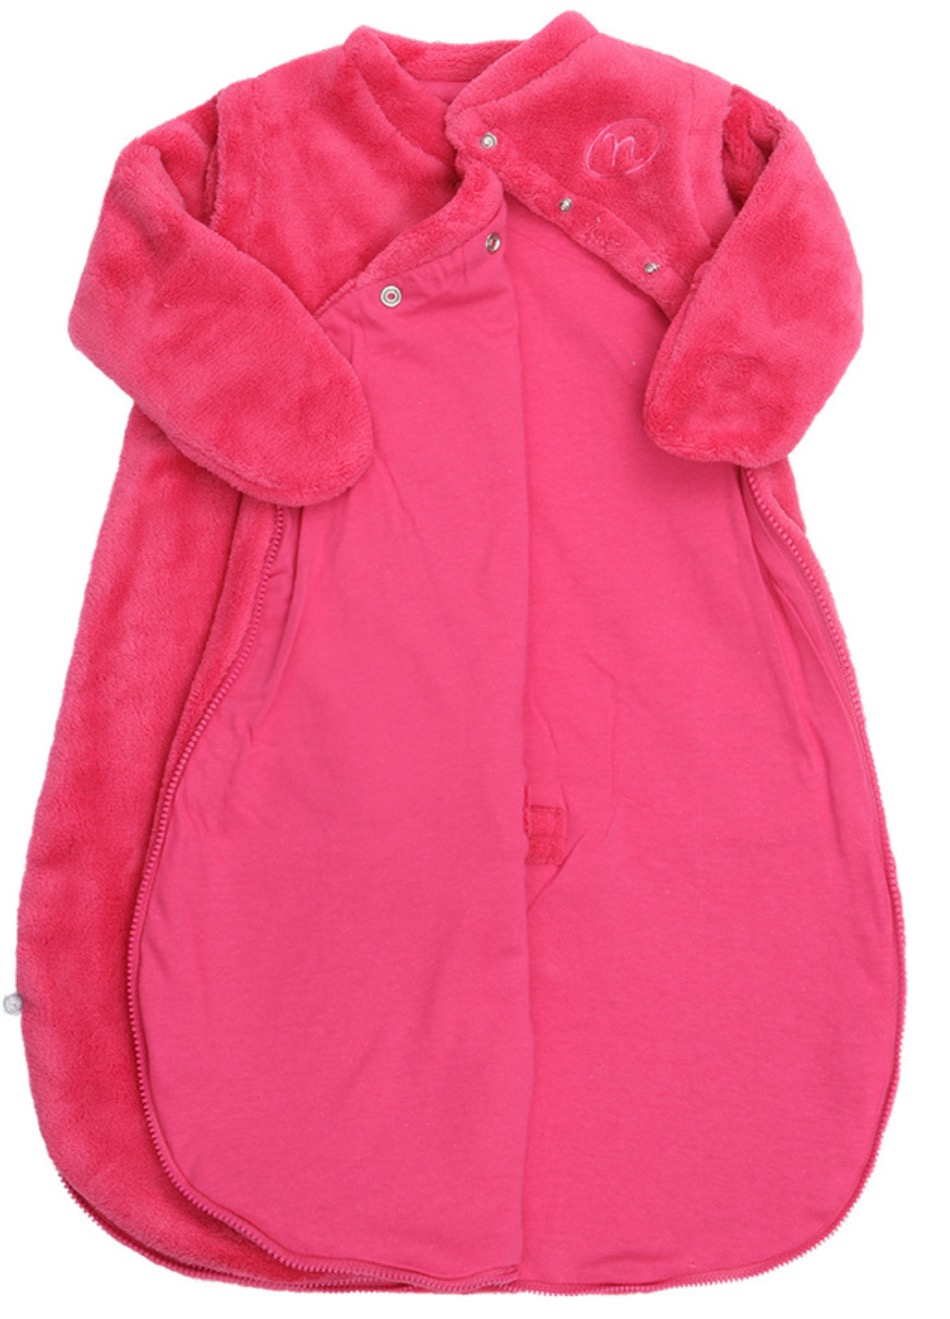 Nicki-Schlafsack 3in1 in pink